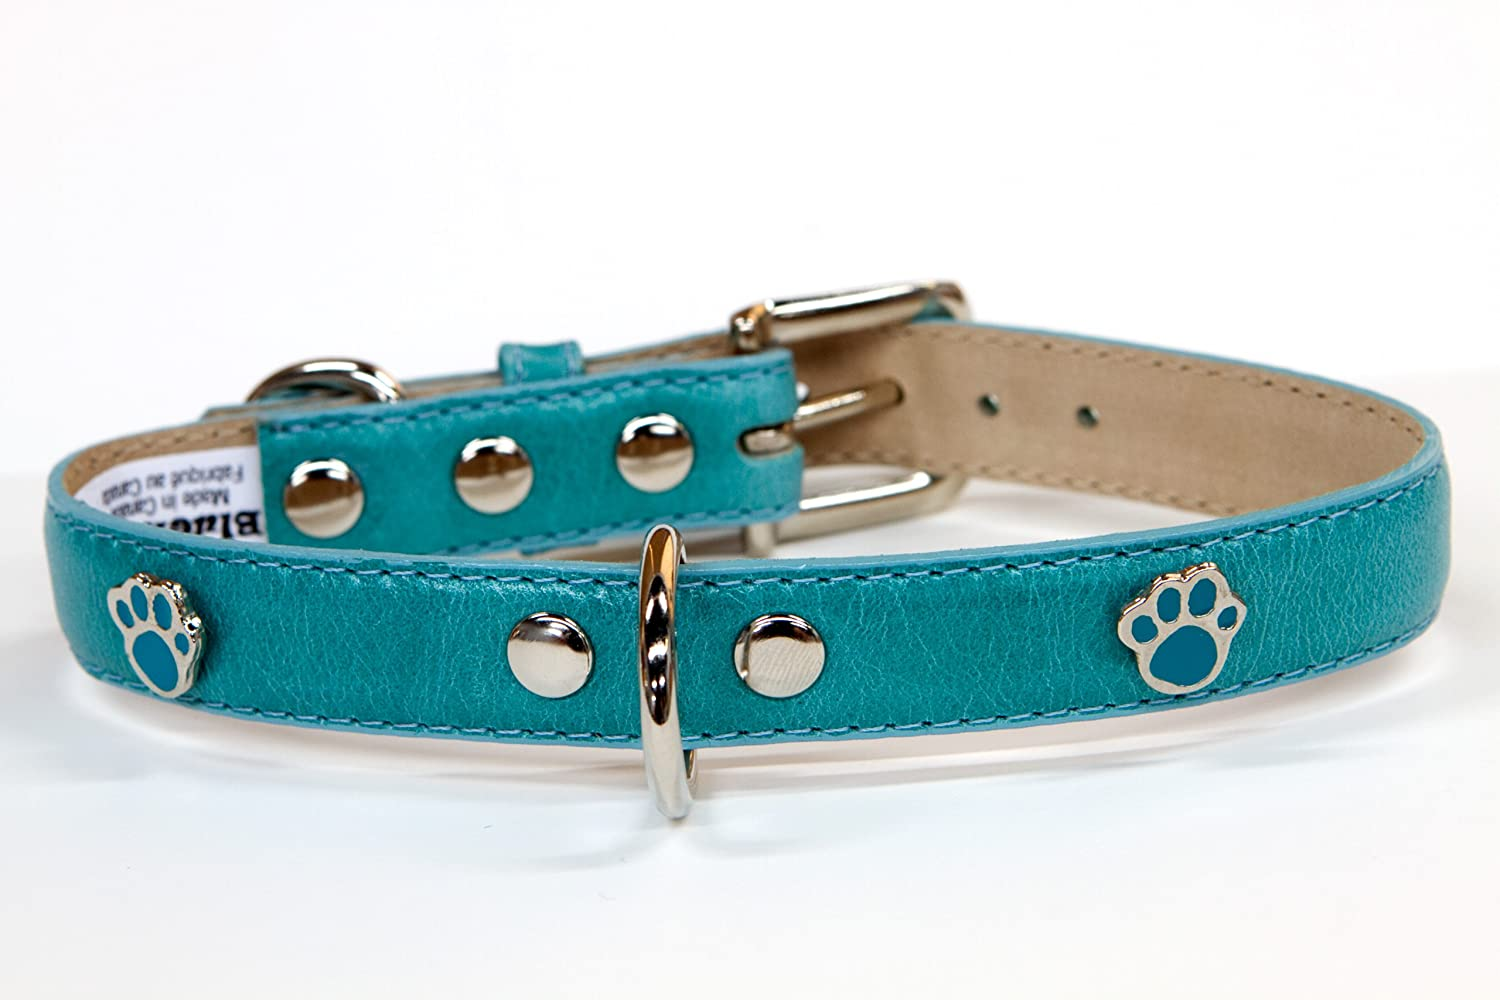 blueemax Genuine Leather Vintage Cow Dog Collar with Paw Stud, 5 8-Inch by 10-Inch, Turquoise